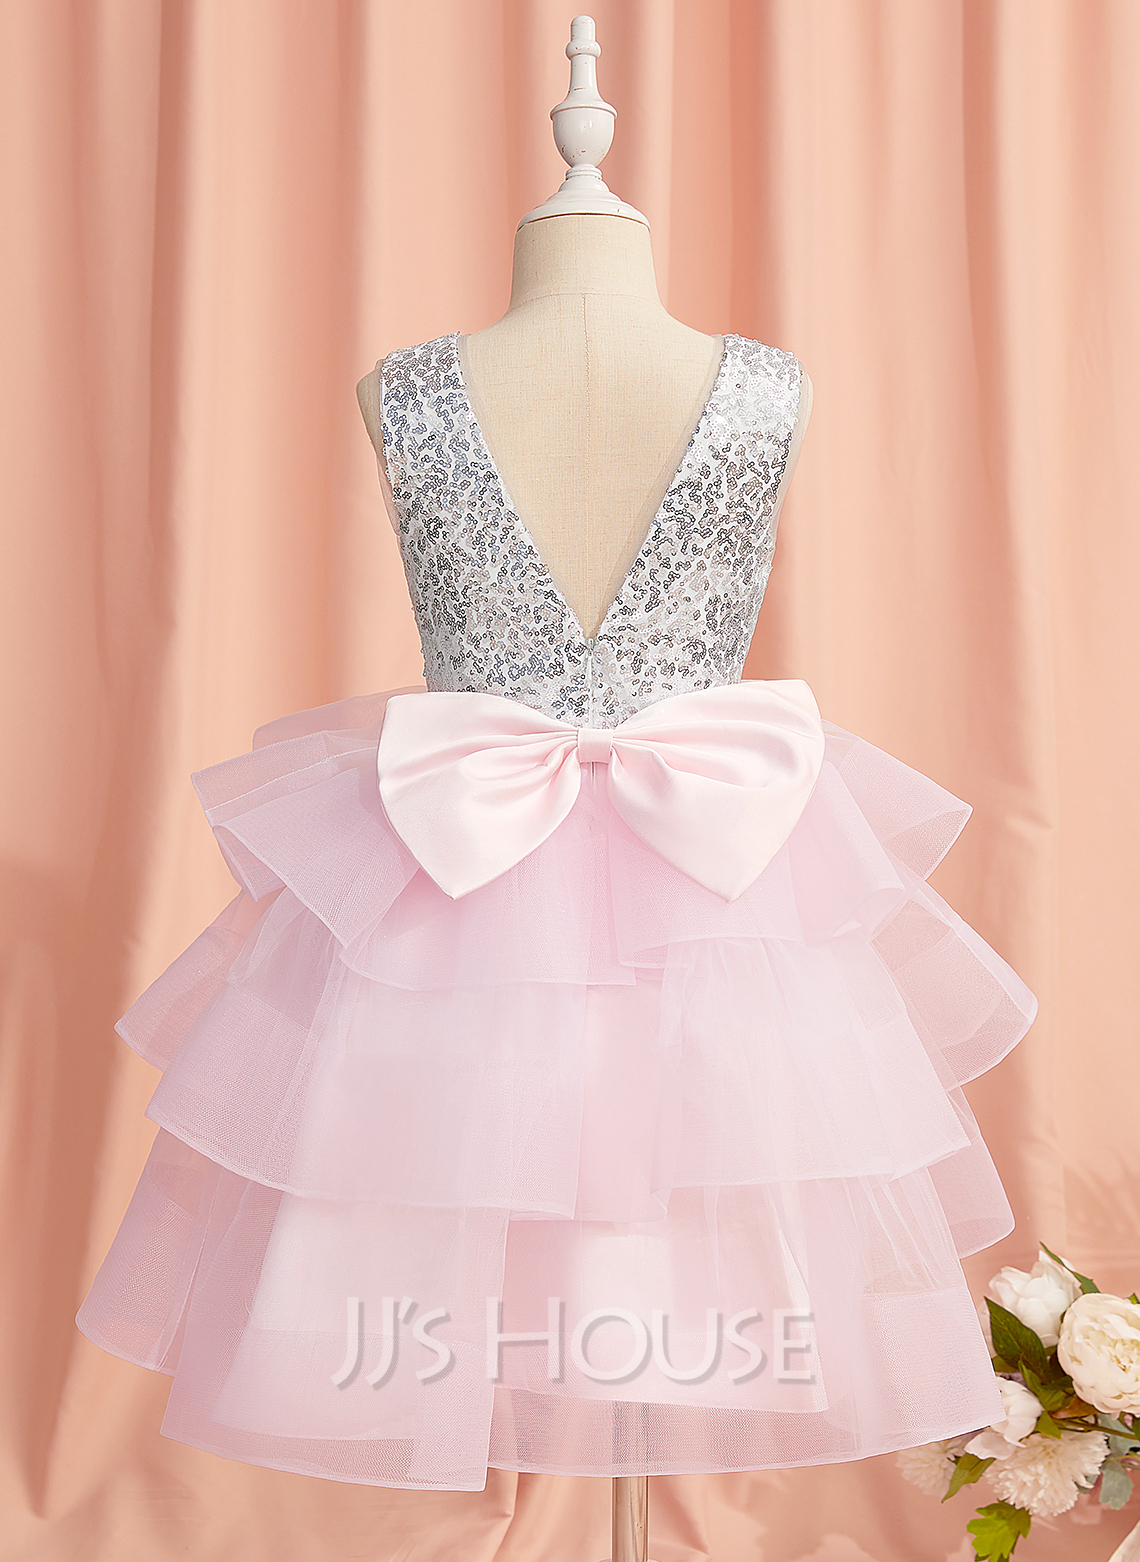 Ball-Gown/Princess Knee-length Flower Girl Dress - Satin/Tulle/Sequined Sleeveless Scoop Neck With Bow(s)/V Back